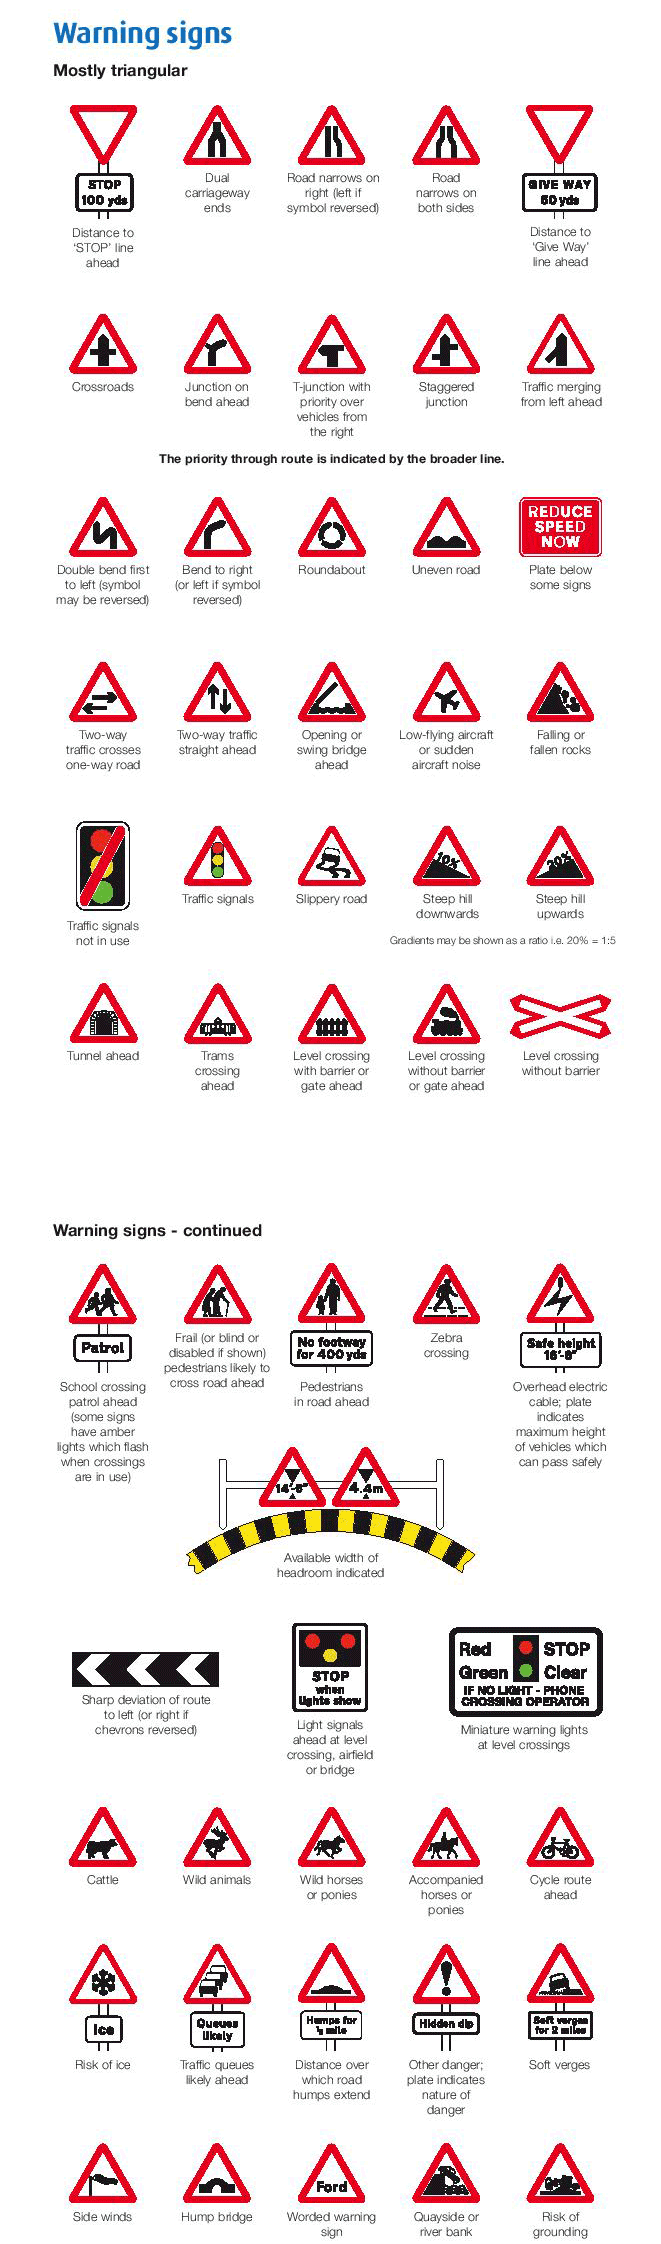 uk driving warning signs british